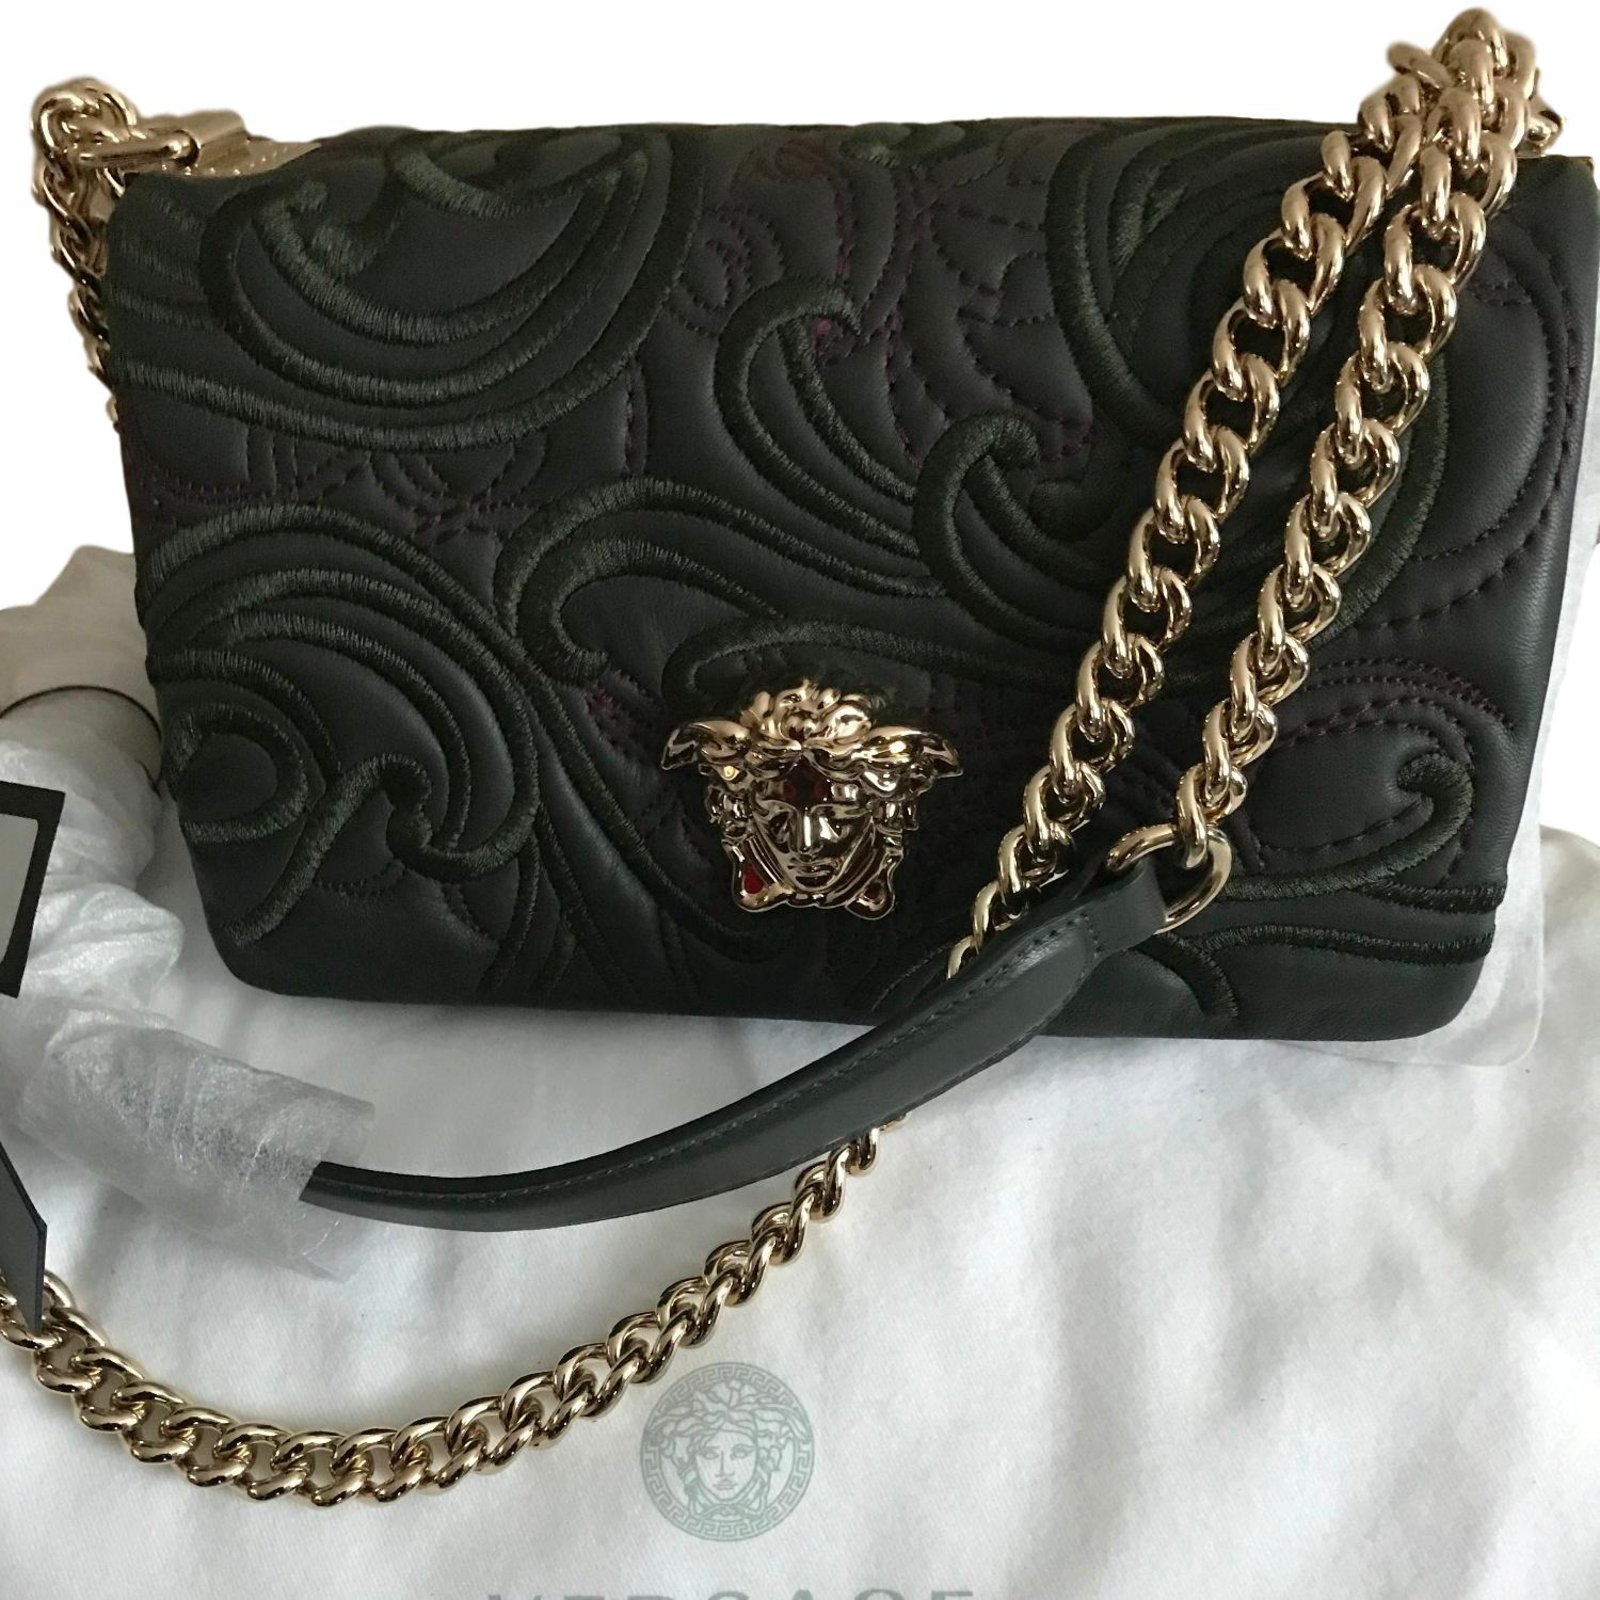 Embroidered Baroque Sultan Bag